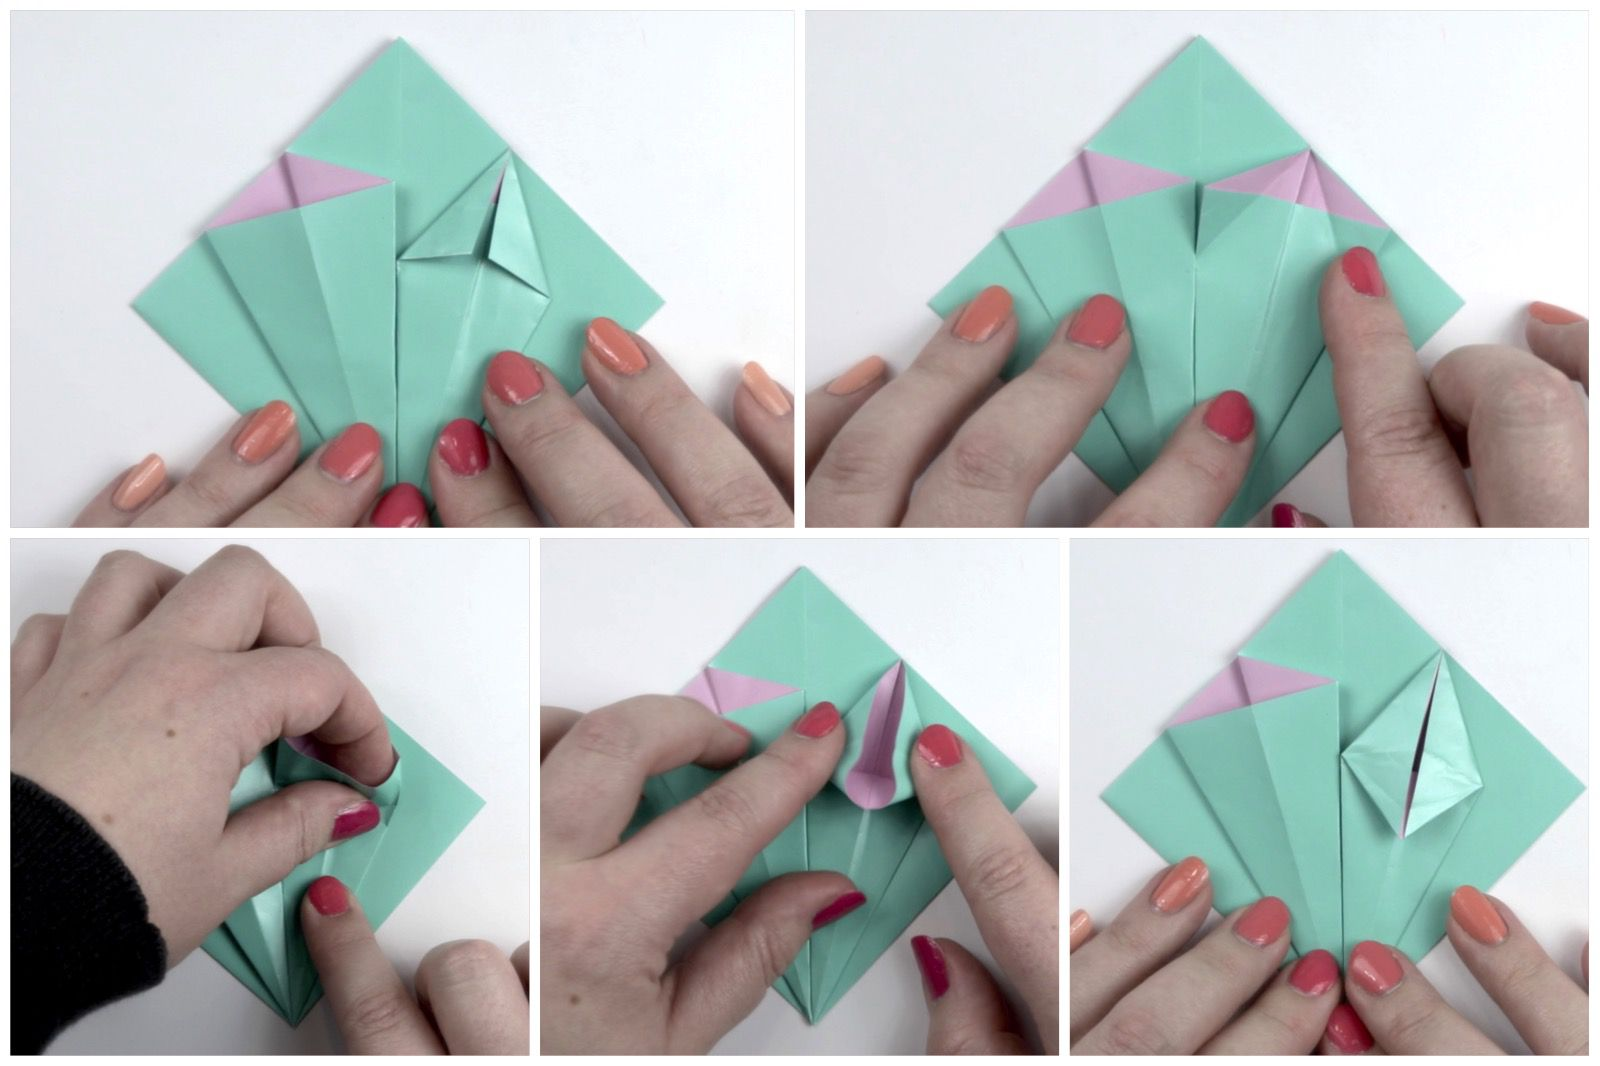 53 Directions for Origami Flower - Learn how to Make Distinctive ... | 1066x1600